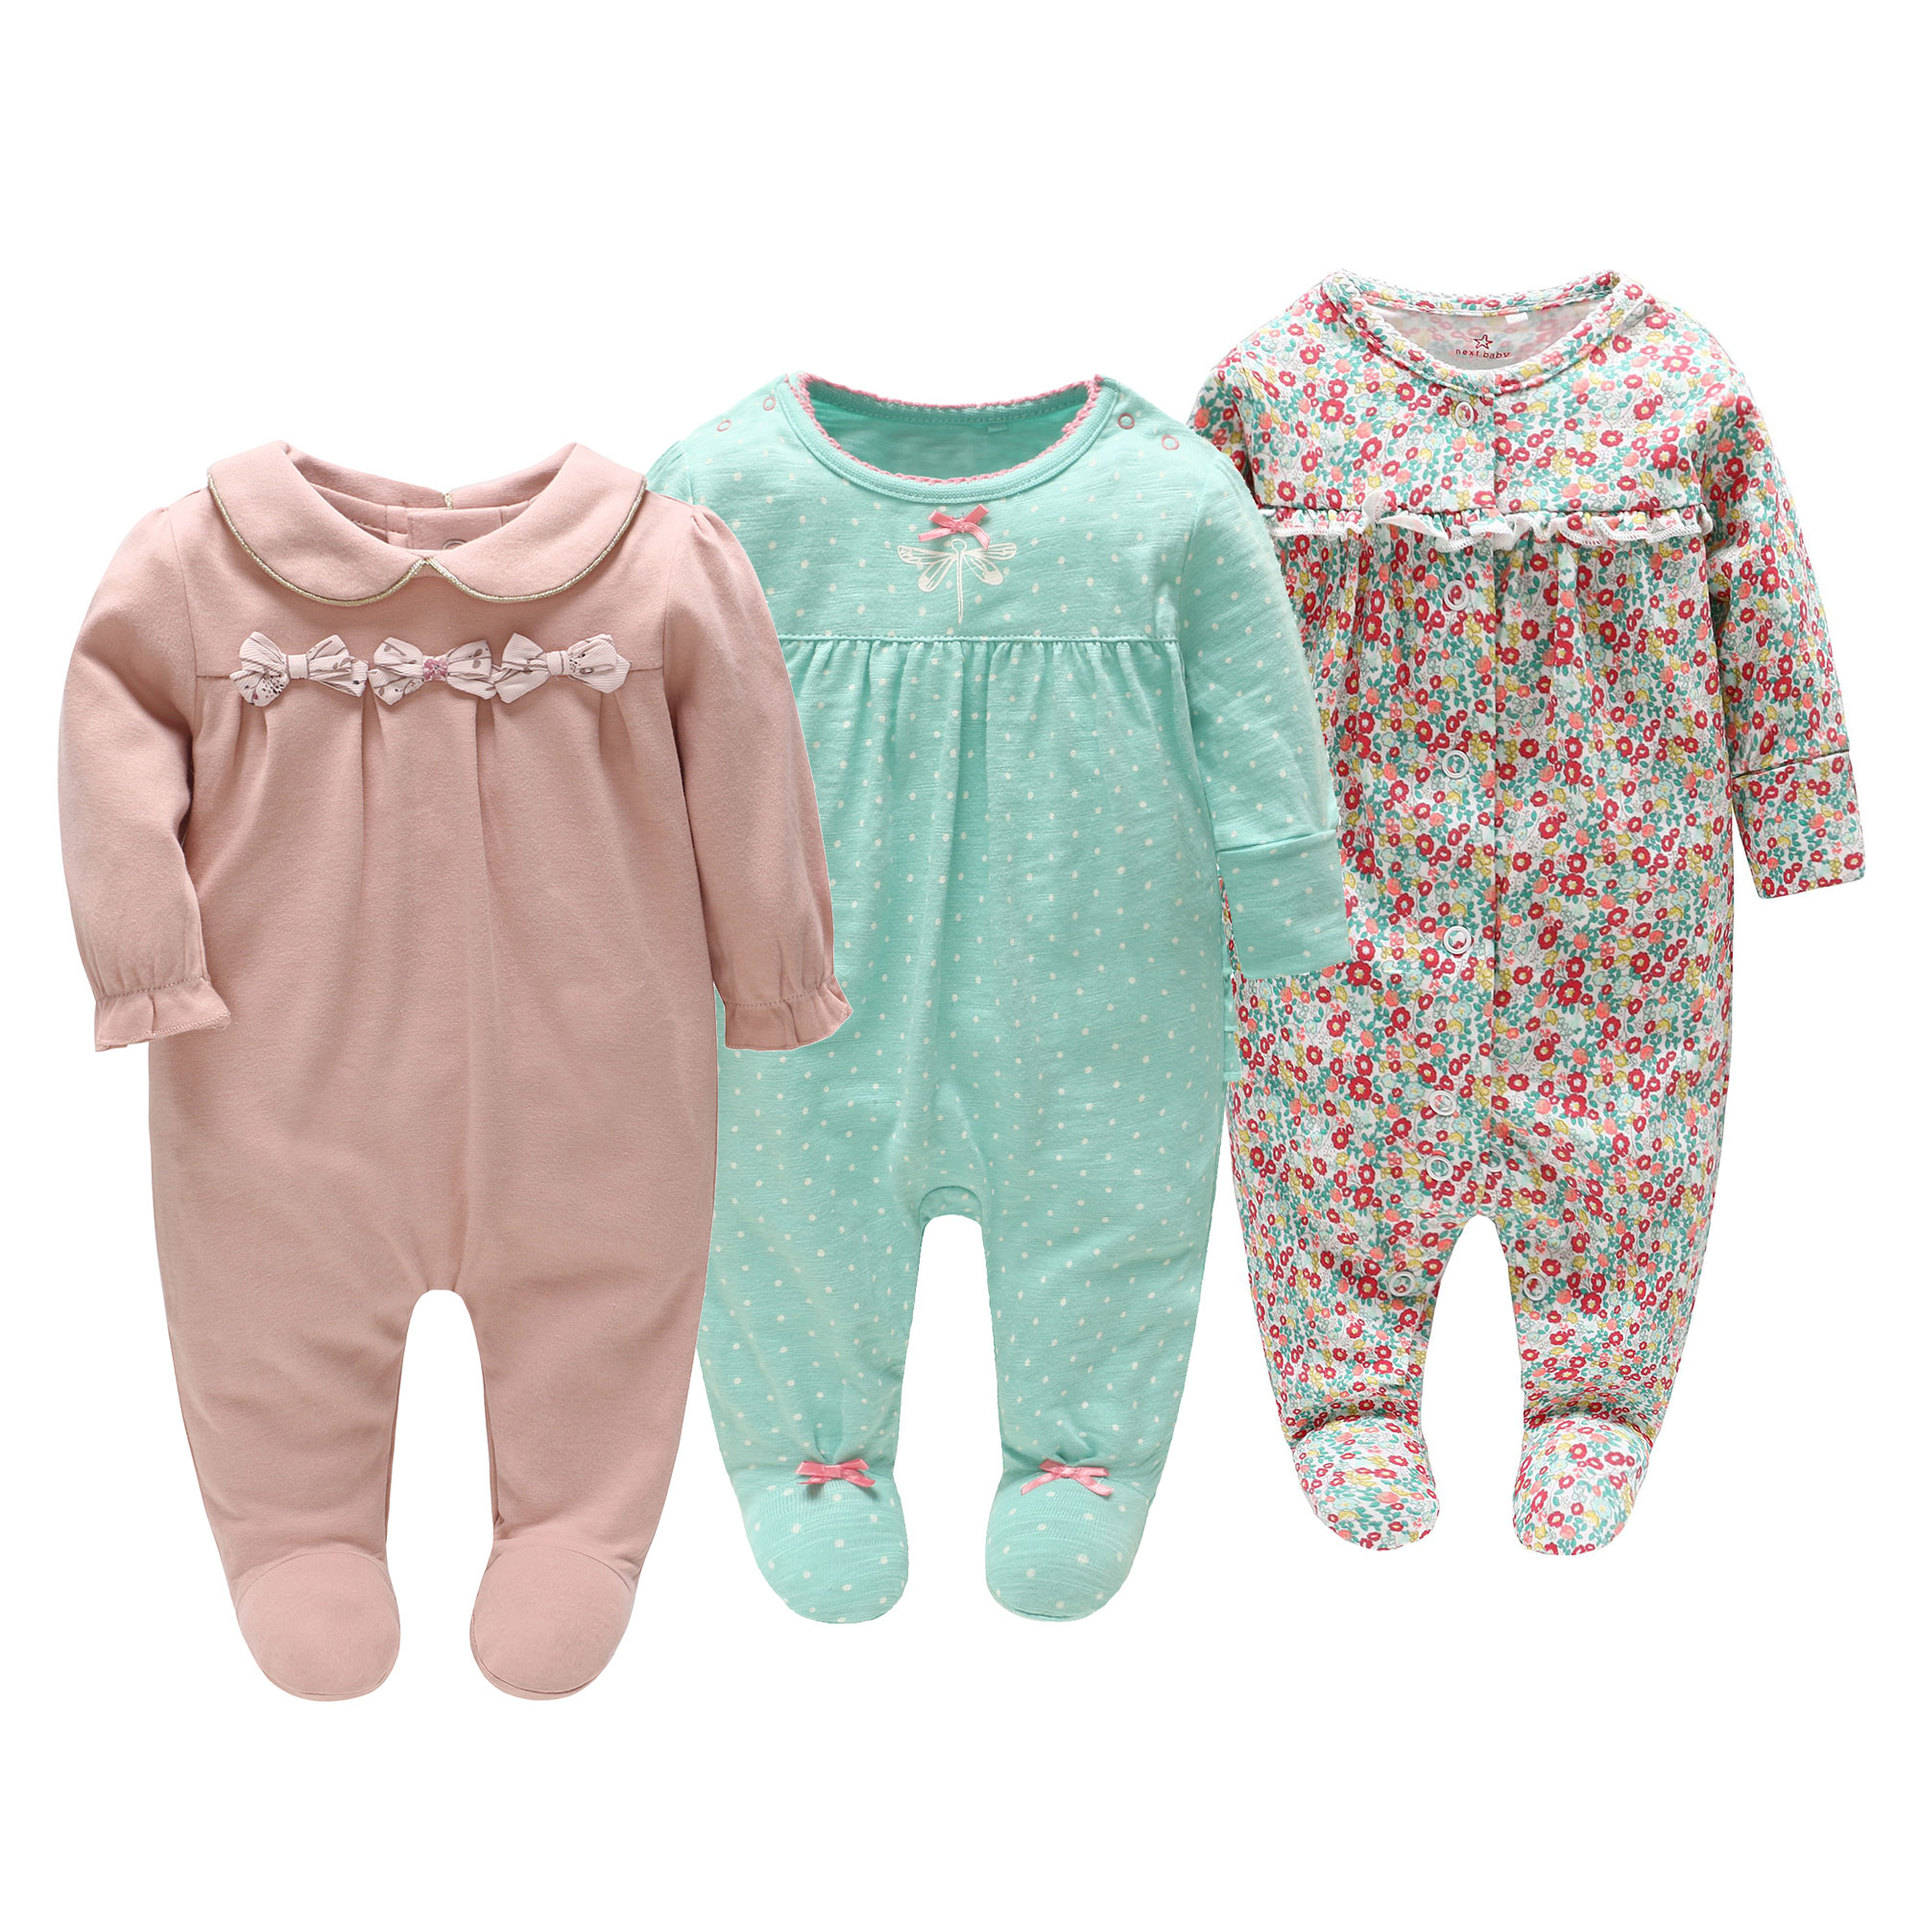 Picturesque Childhood new born Baby Girl 0-12 months Footies Cotton Long Sleeve Pink Neckline Bow Style цены